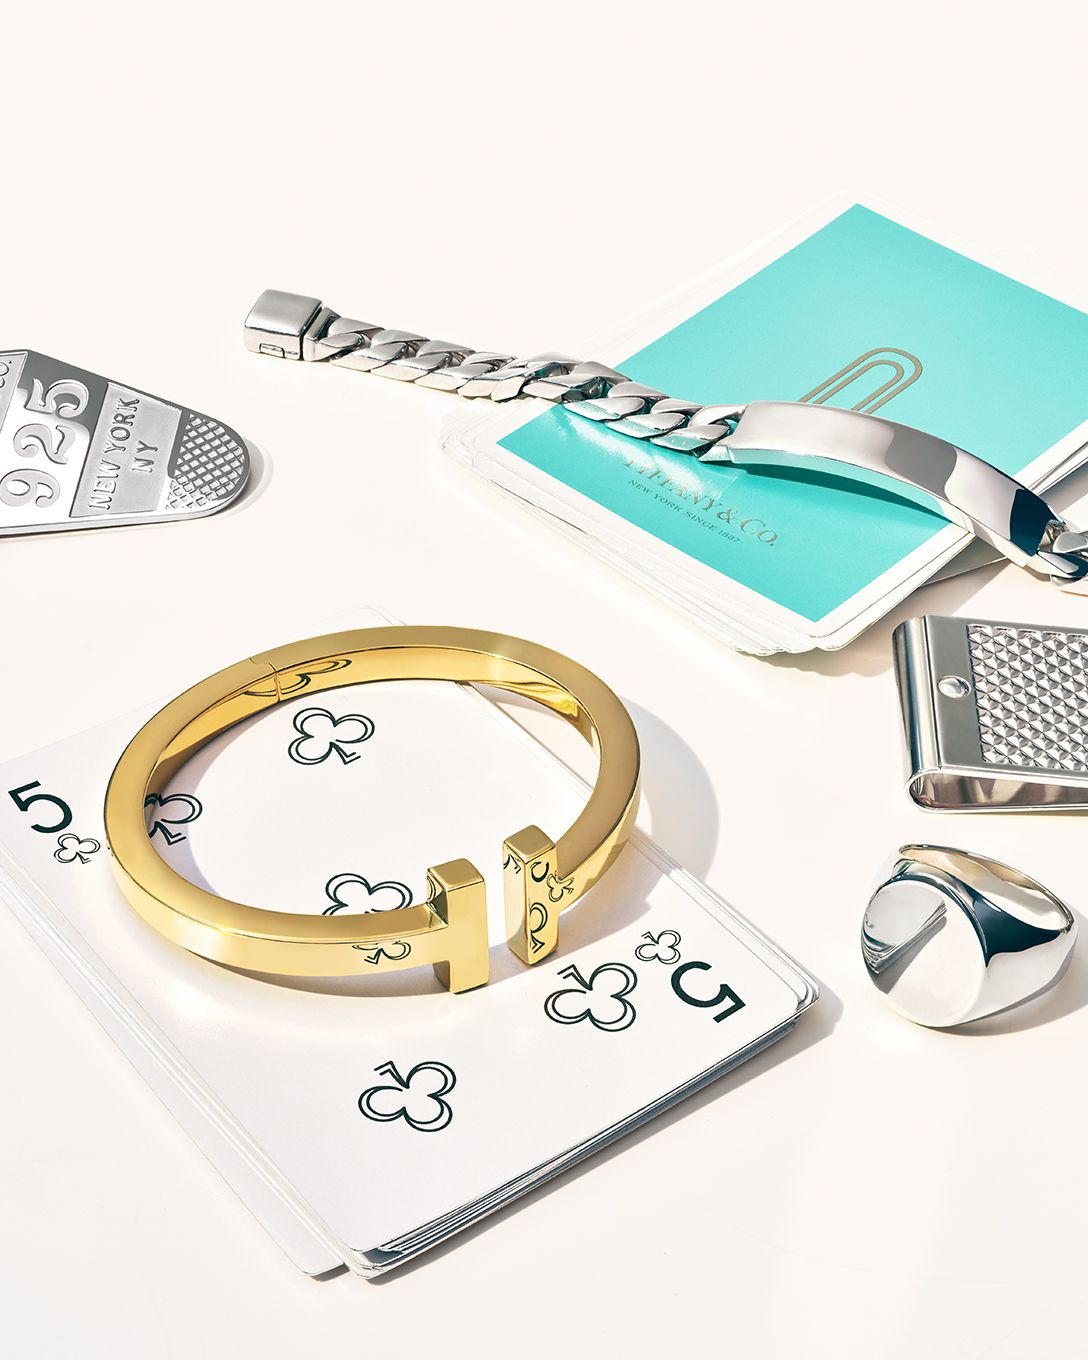 Gifts For Him Gentlemen Prefer Tiffany